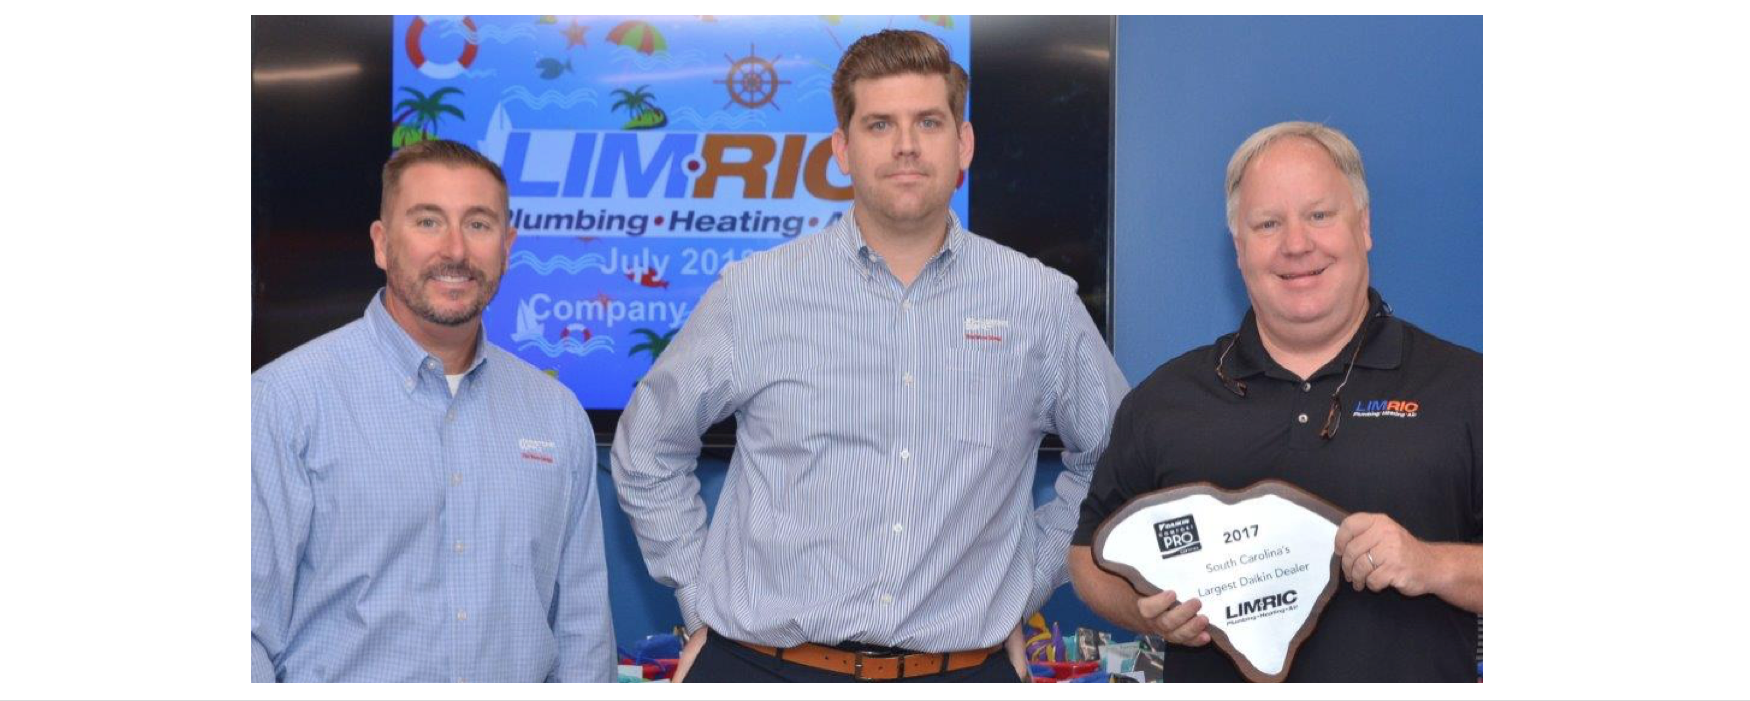 LimRic Plumbing, Heating & Air Recognized for Being Daikin's Largest 2017 South Carolina Dealer